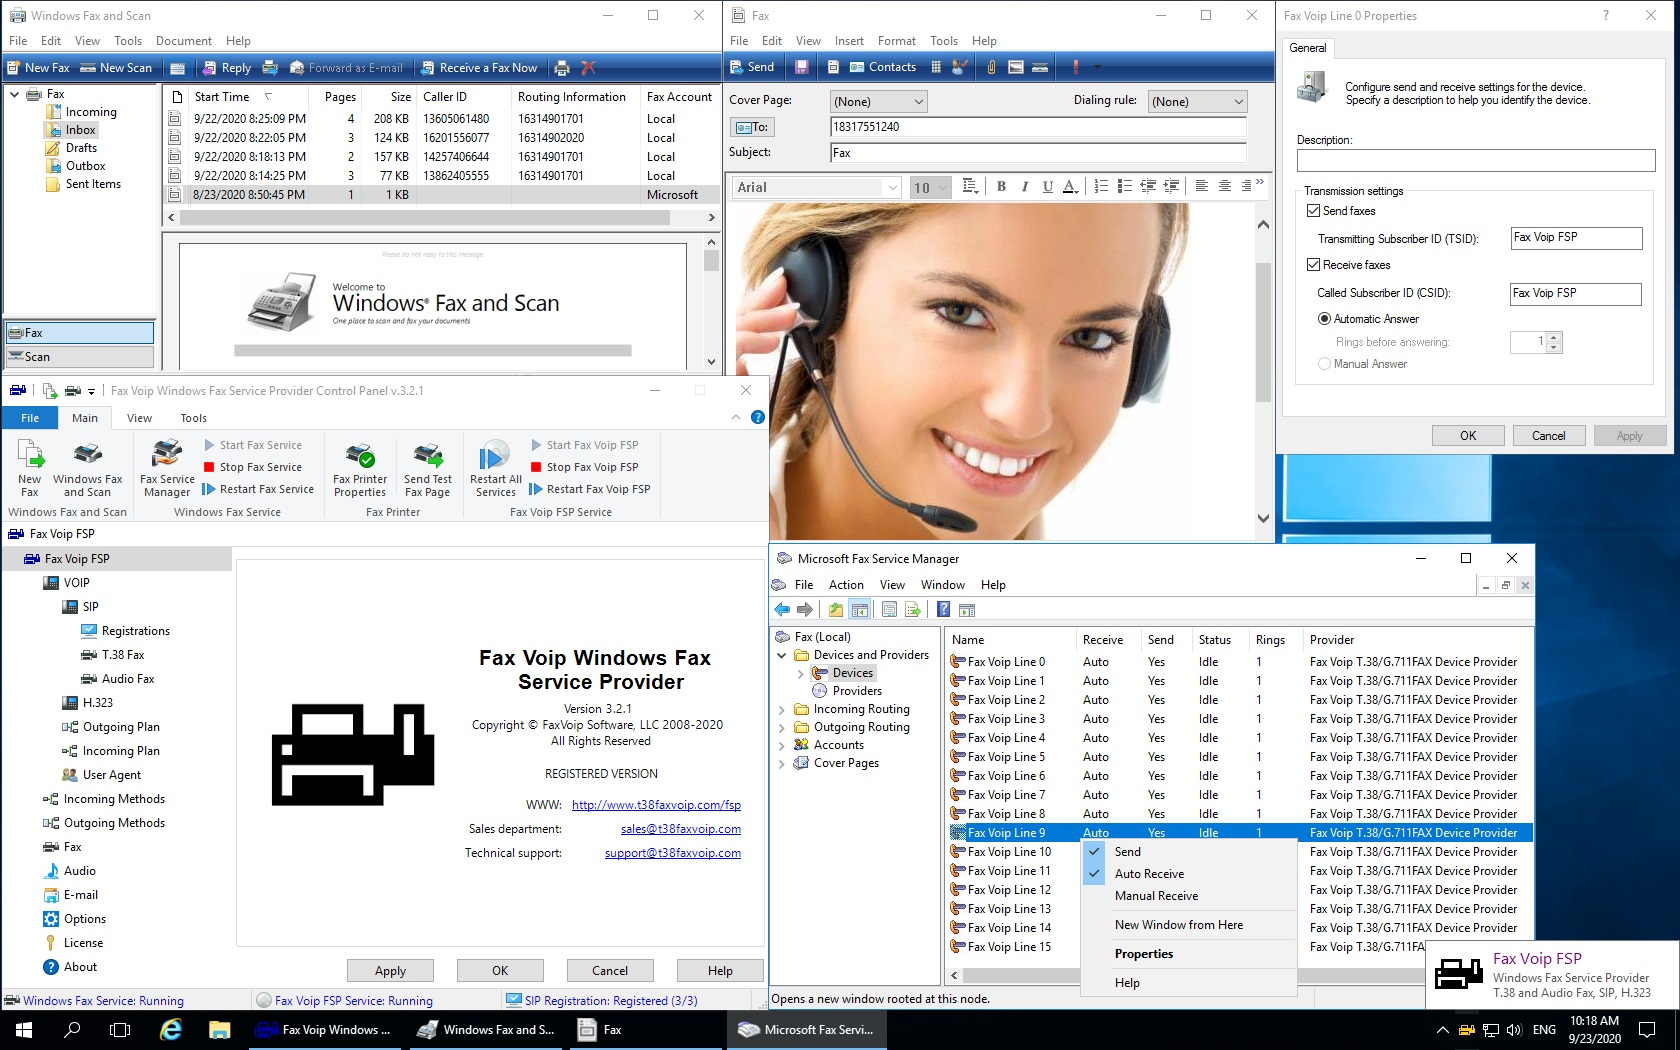 Fax Voip Windows Fax Service Provider Screen shot